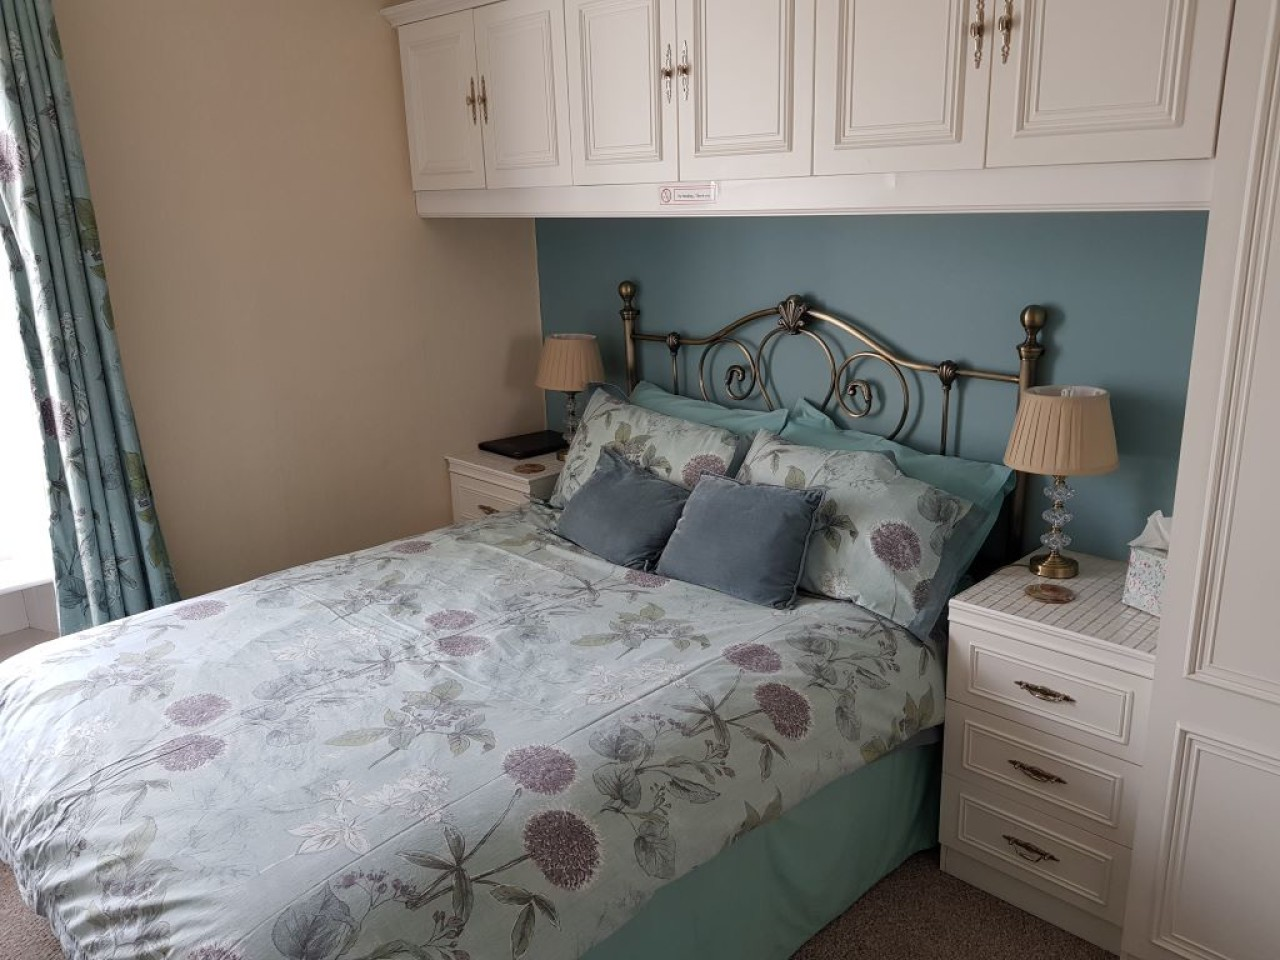 Turquoise room small double room with en-suite shower room, includes toiletries, hairdryer m, tv and hospitality tray including homemade